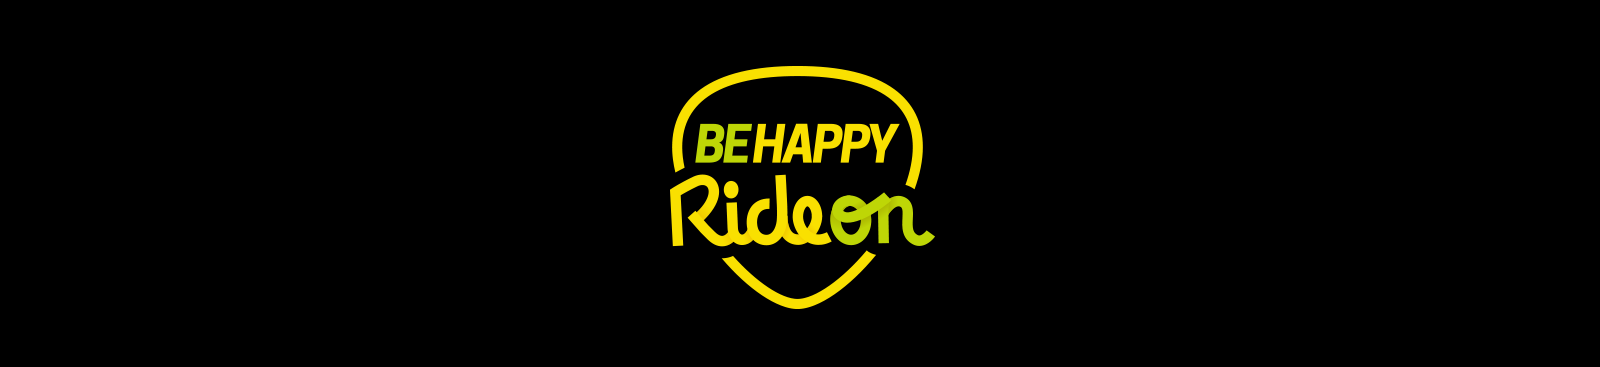 Be Happy Ride On